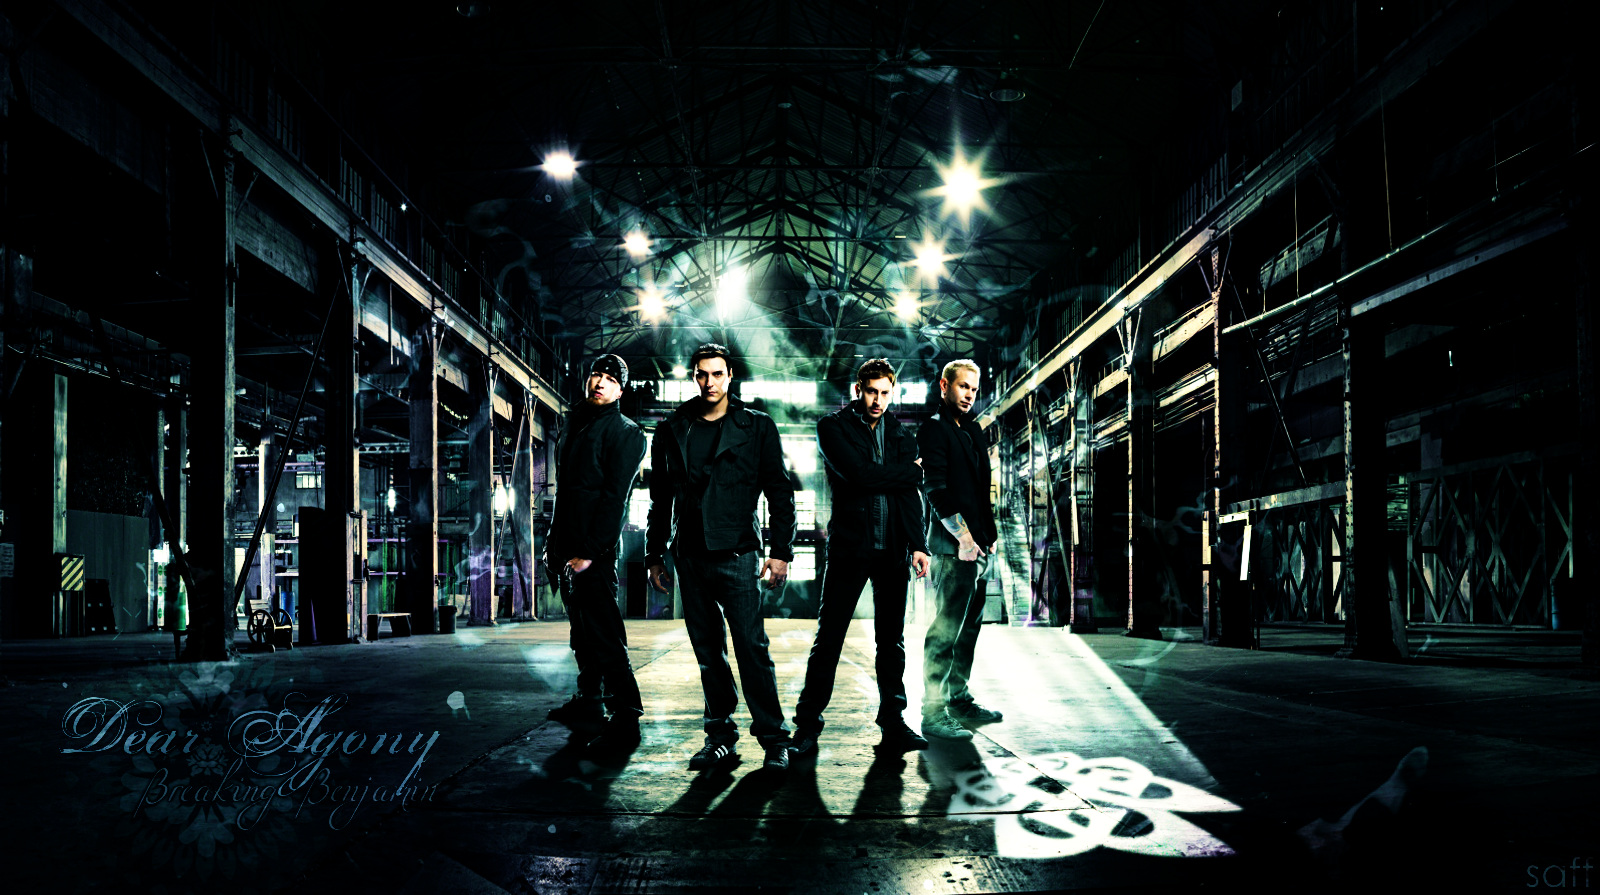 crystalife: mY tOP 5 BreAKinG beNJamIN soNGs (kindda hard ...